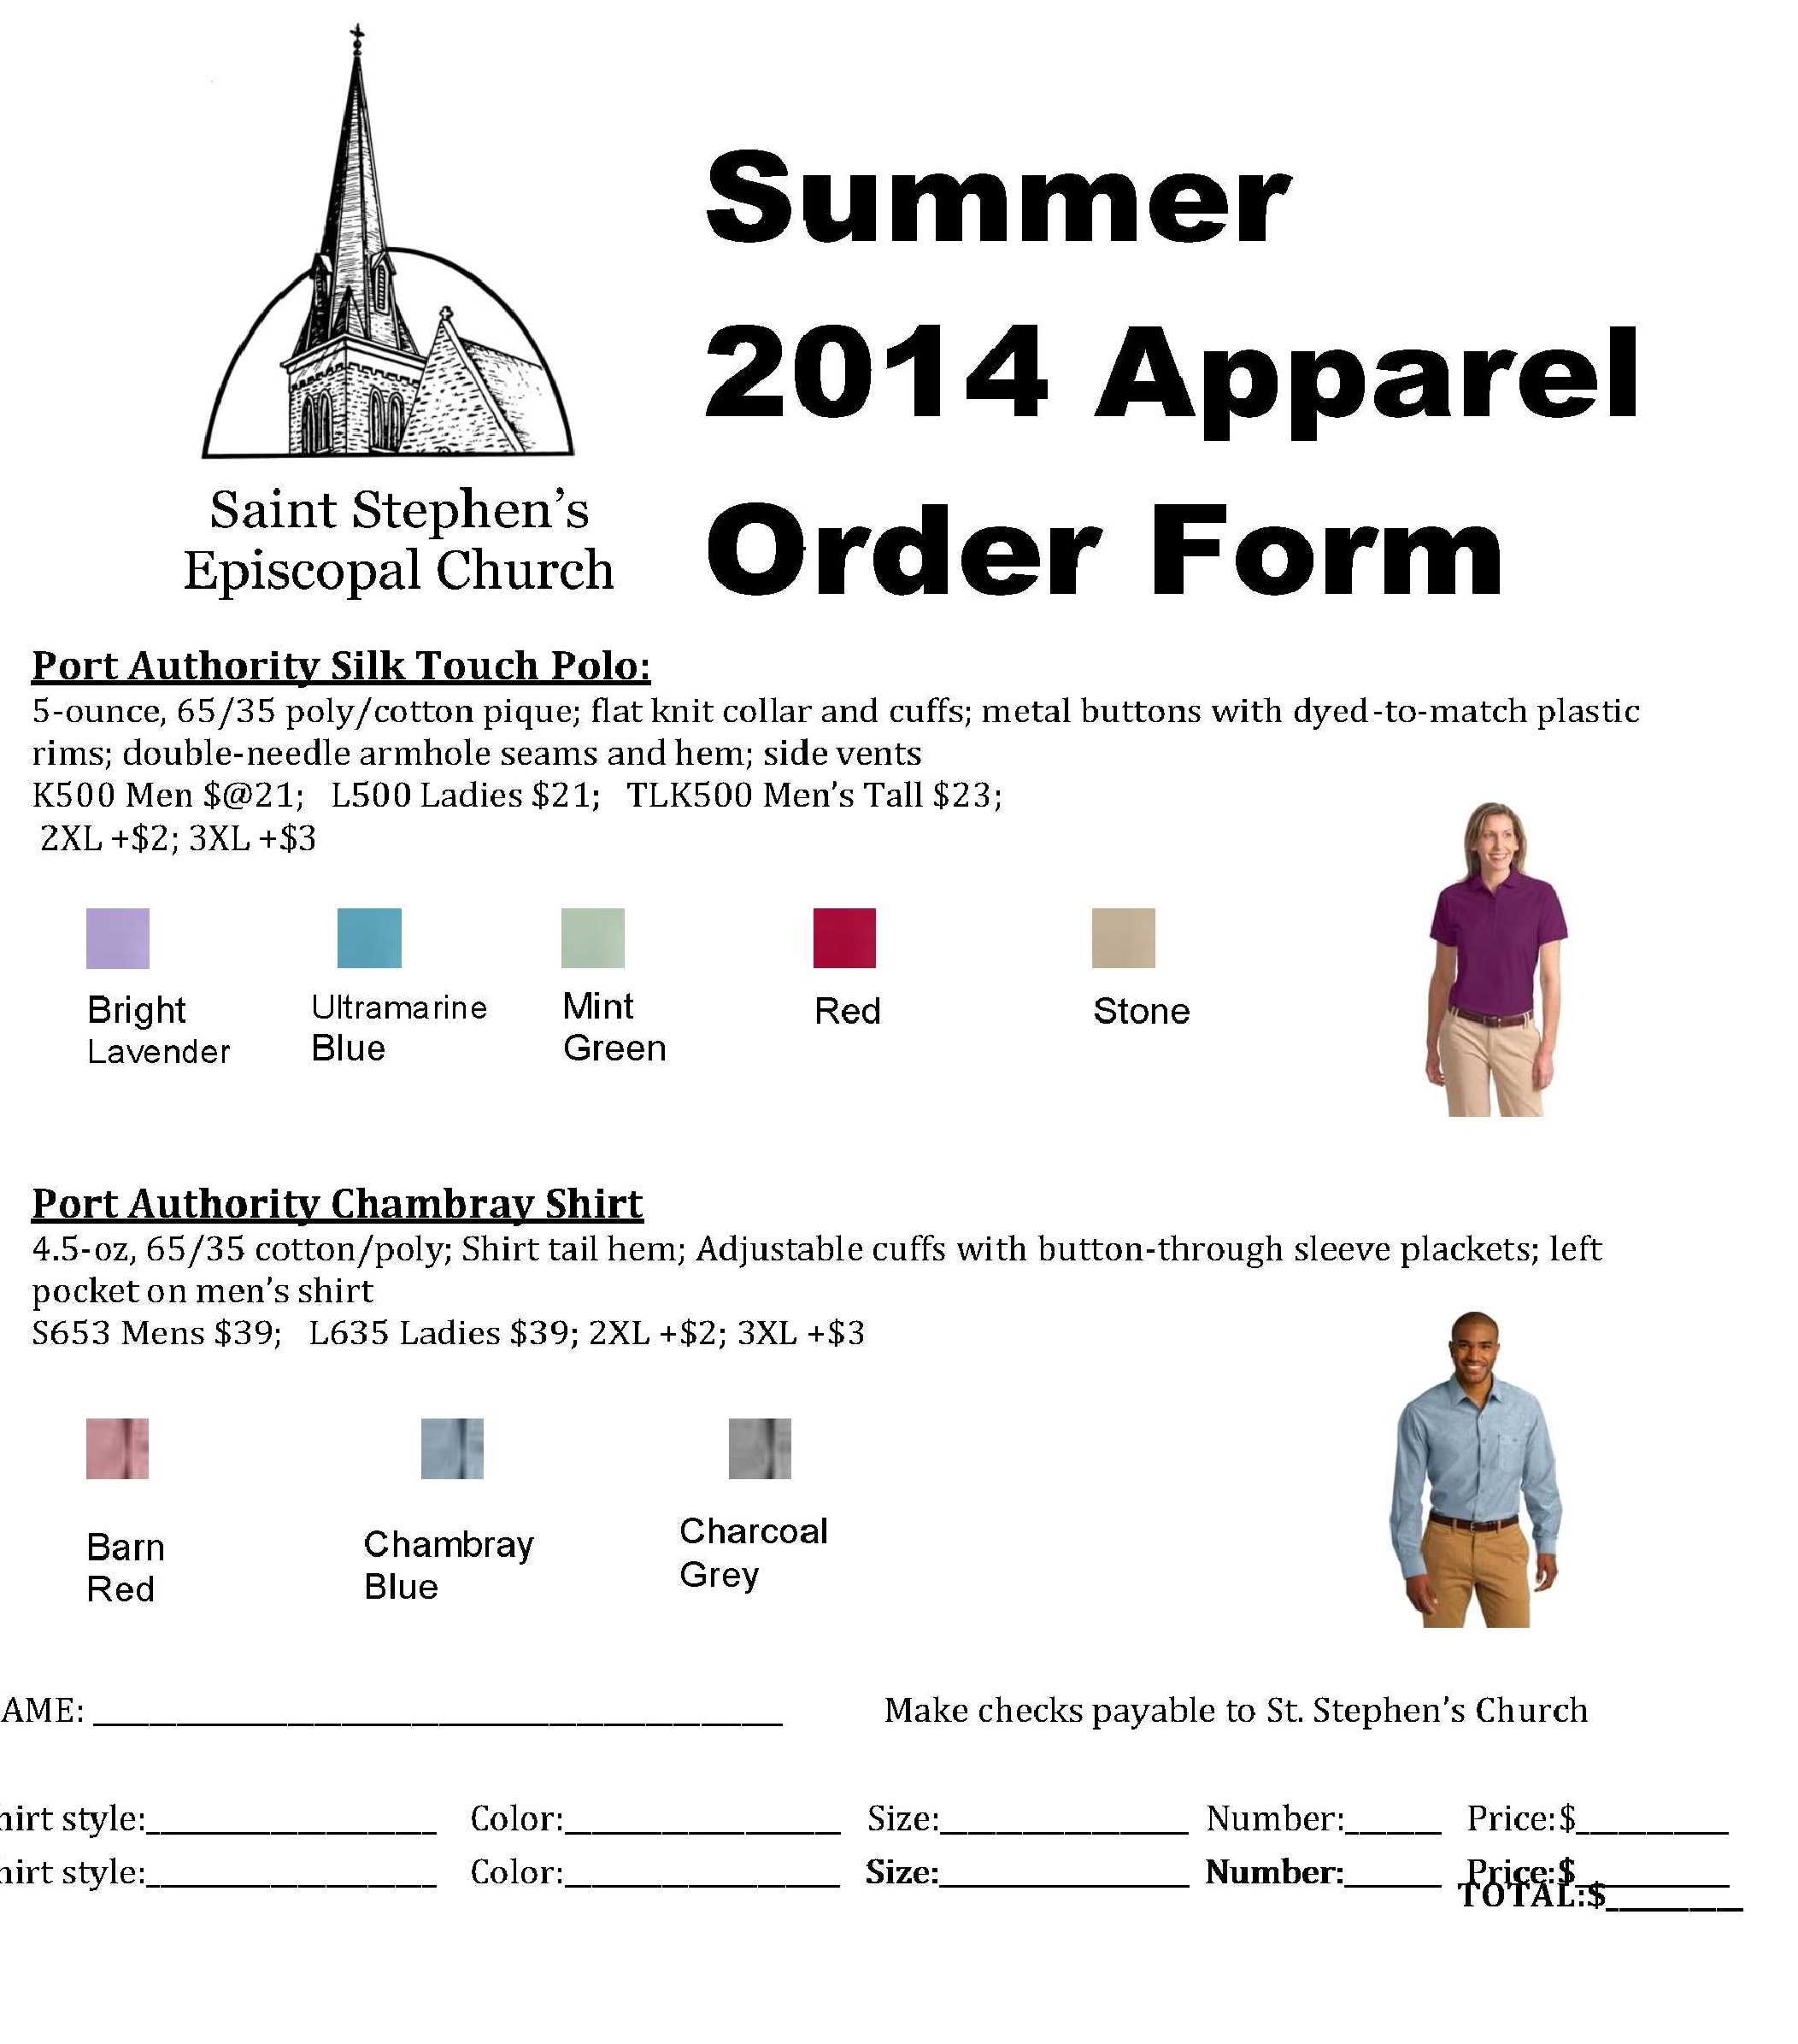 2014 apparel order st stephen's